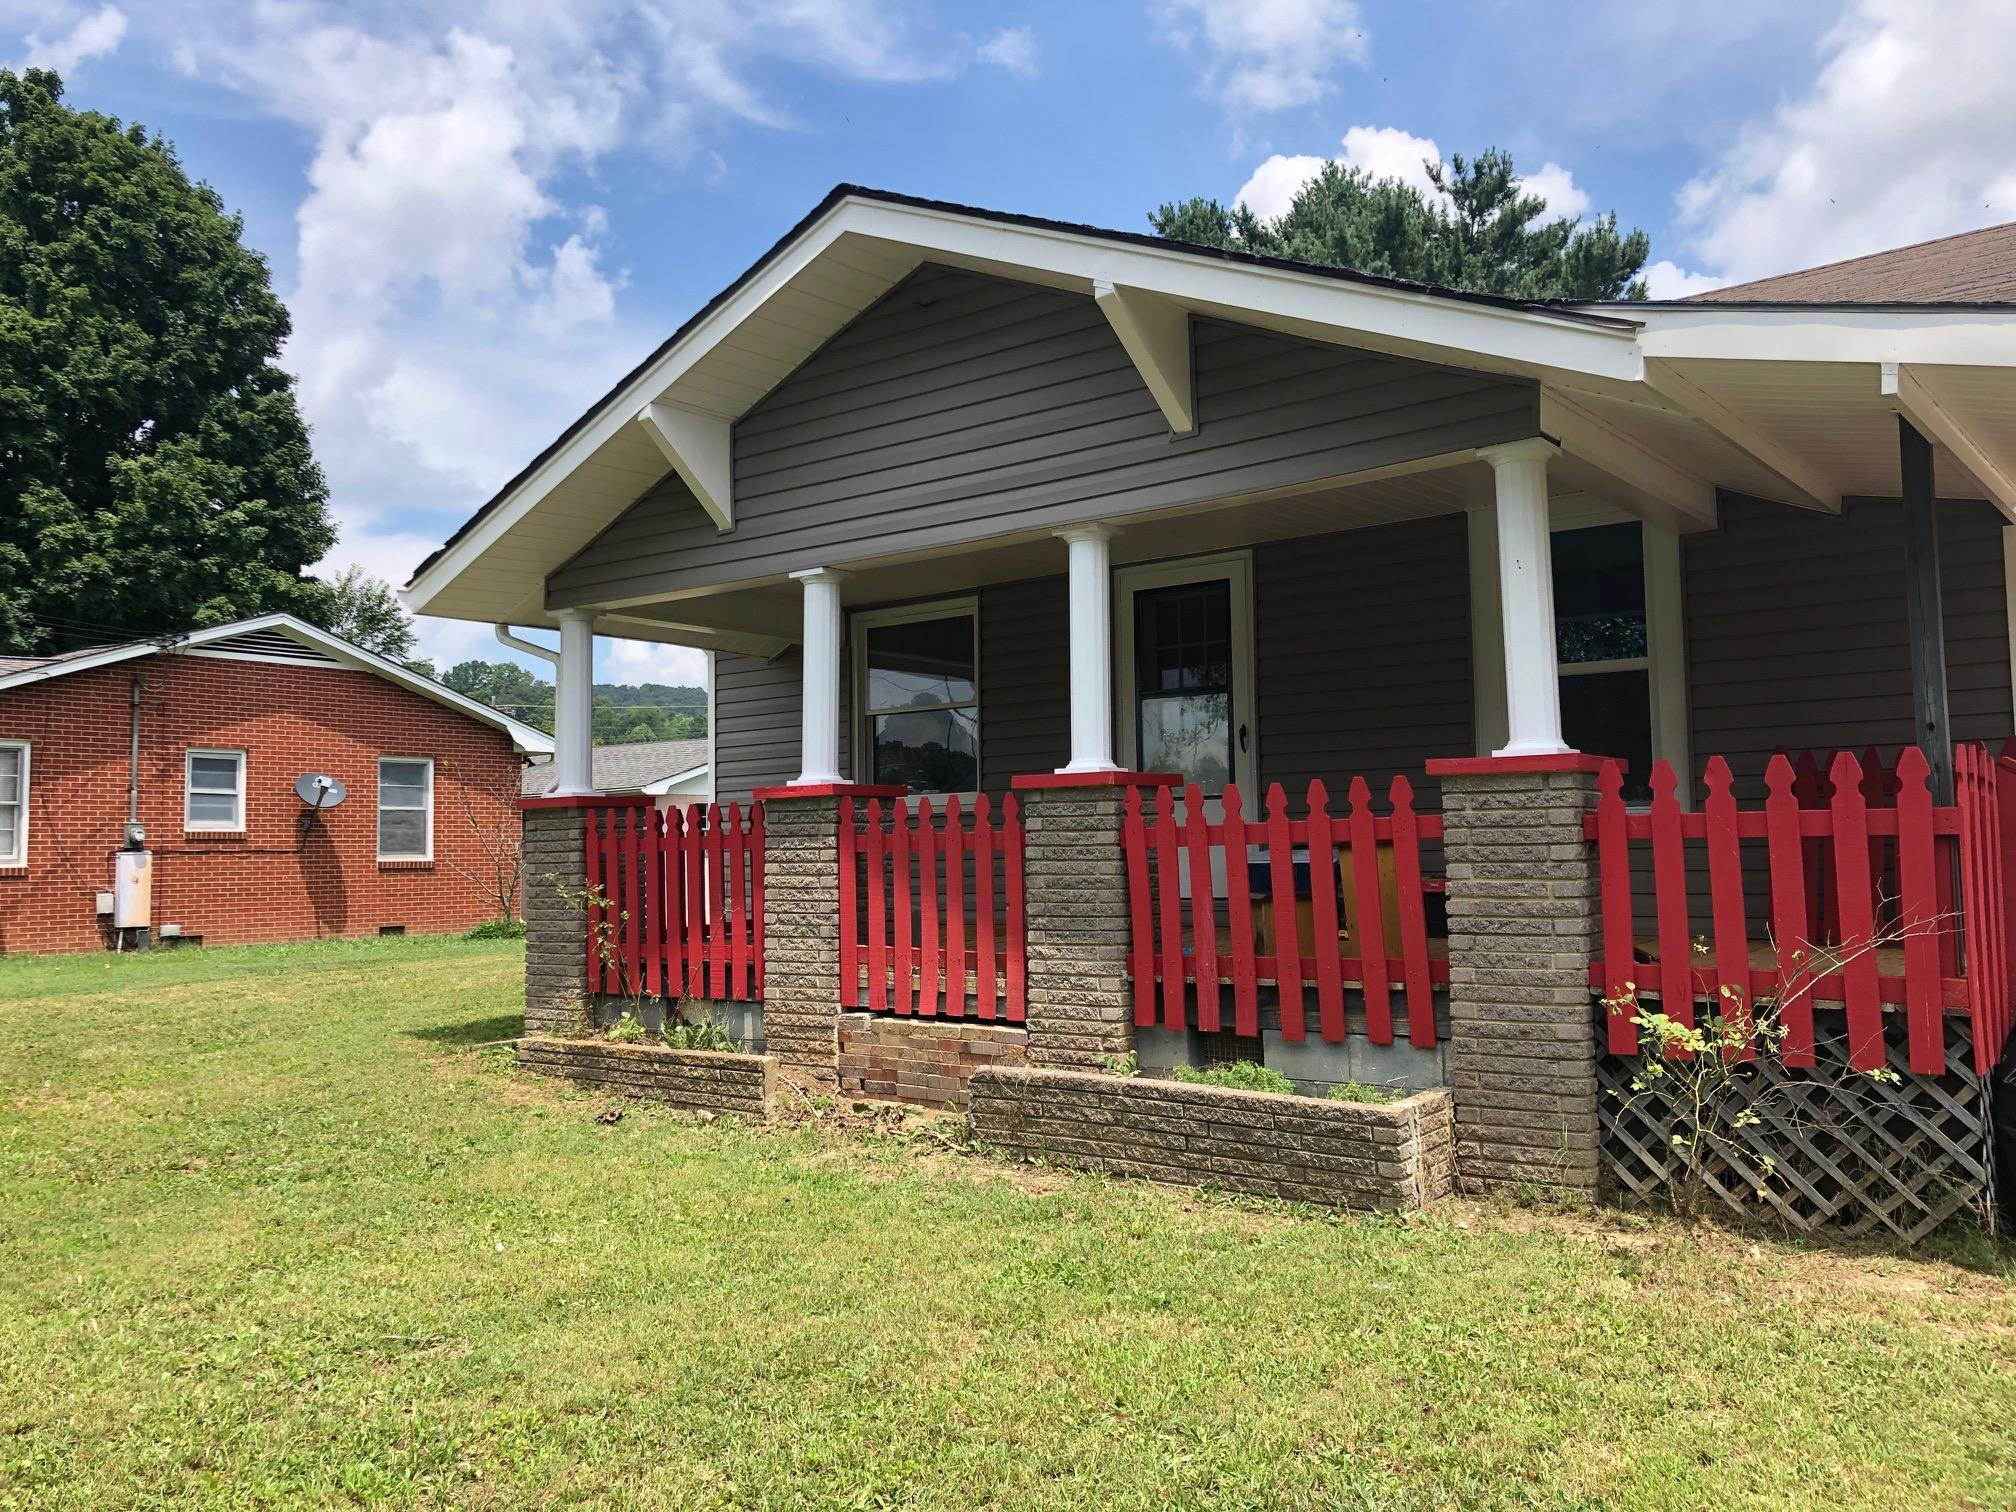 115 Myers Lane, Maynardville, Tennessee 37807, 3 Bedrooms Bedrooms, ,2 BathroomsBathrooms,Single Family,For Sale,Myers,1089514